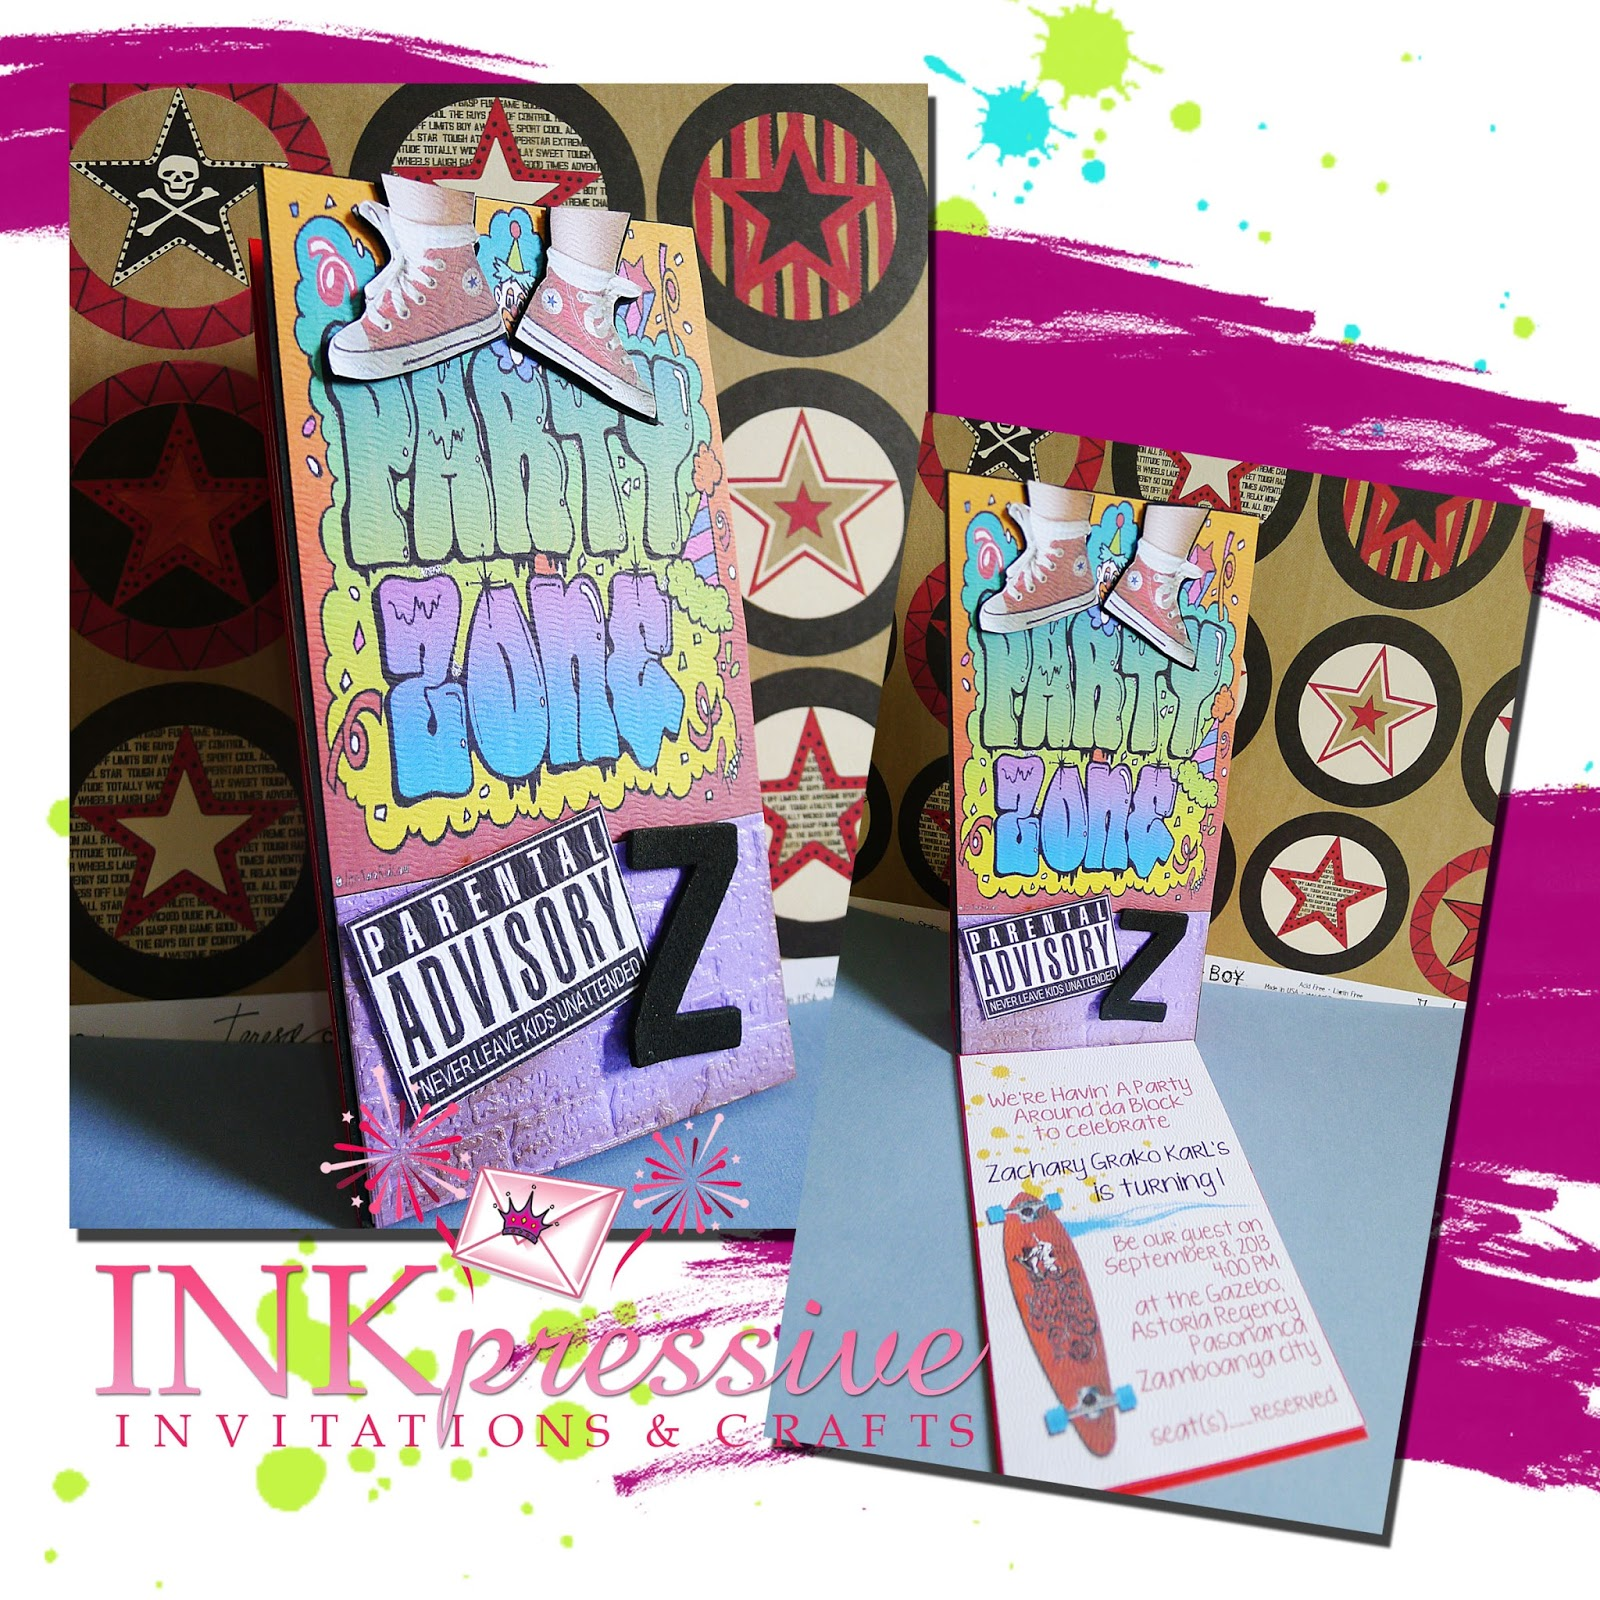 Graffiti Block Party Easel Card invitations | INKPRESSIVE INVITATIONS